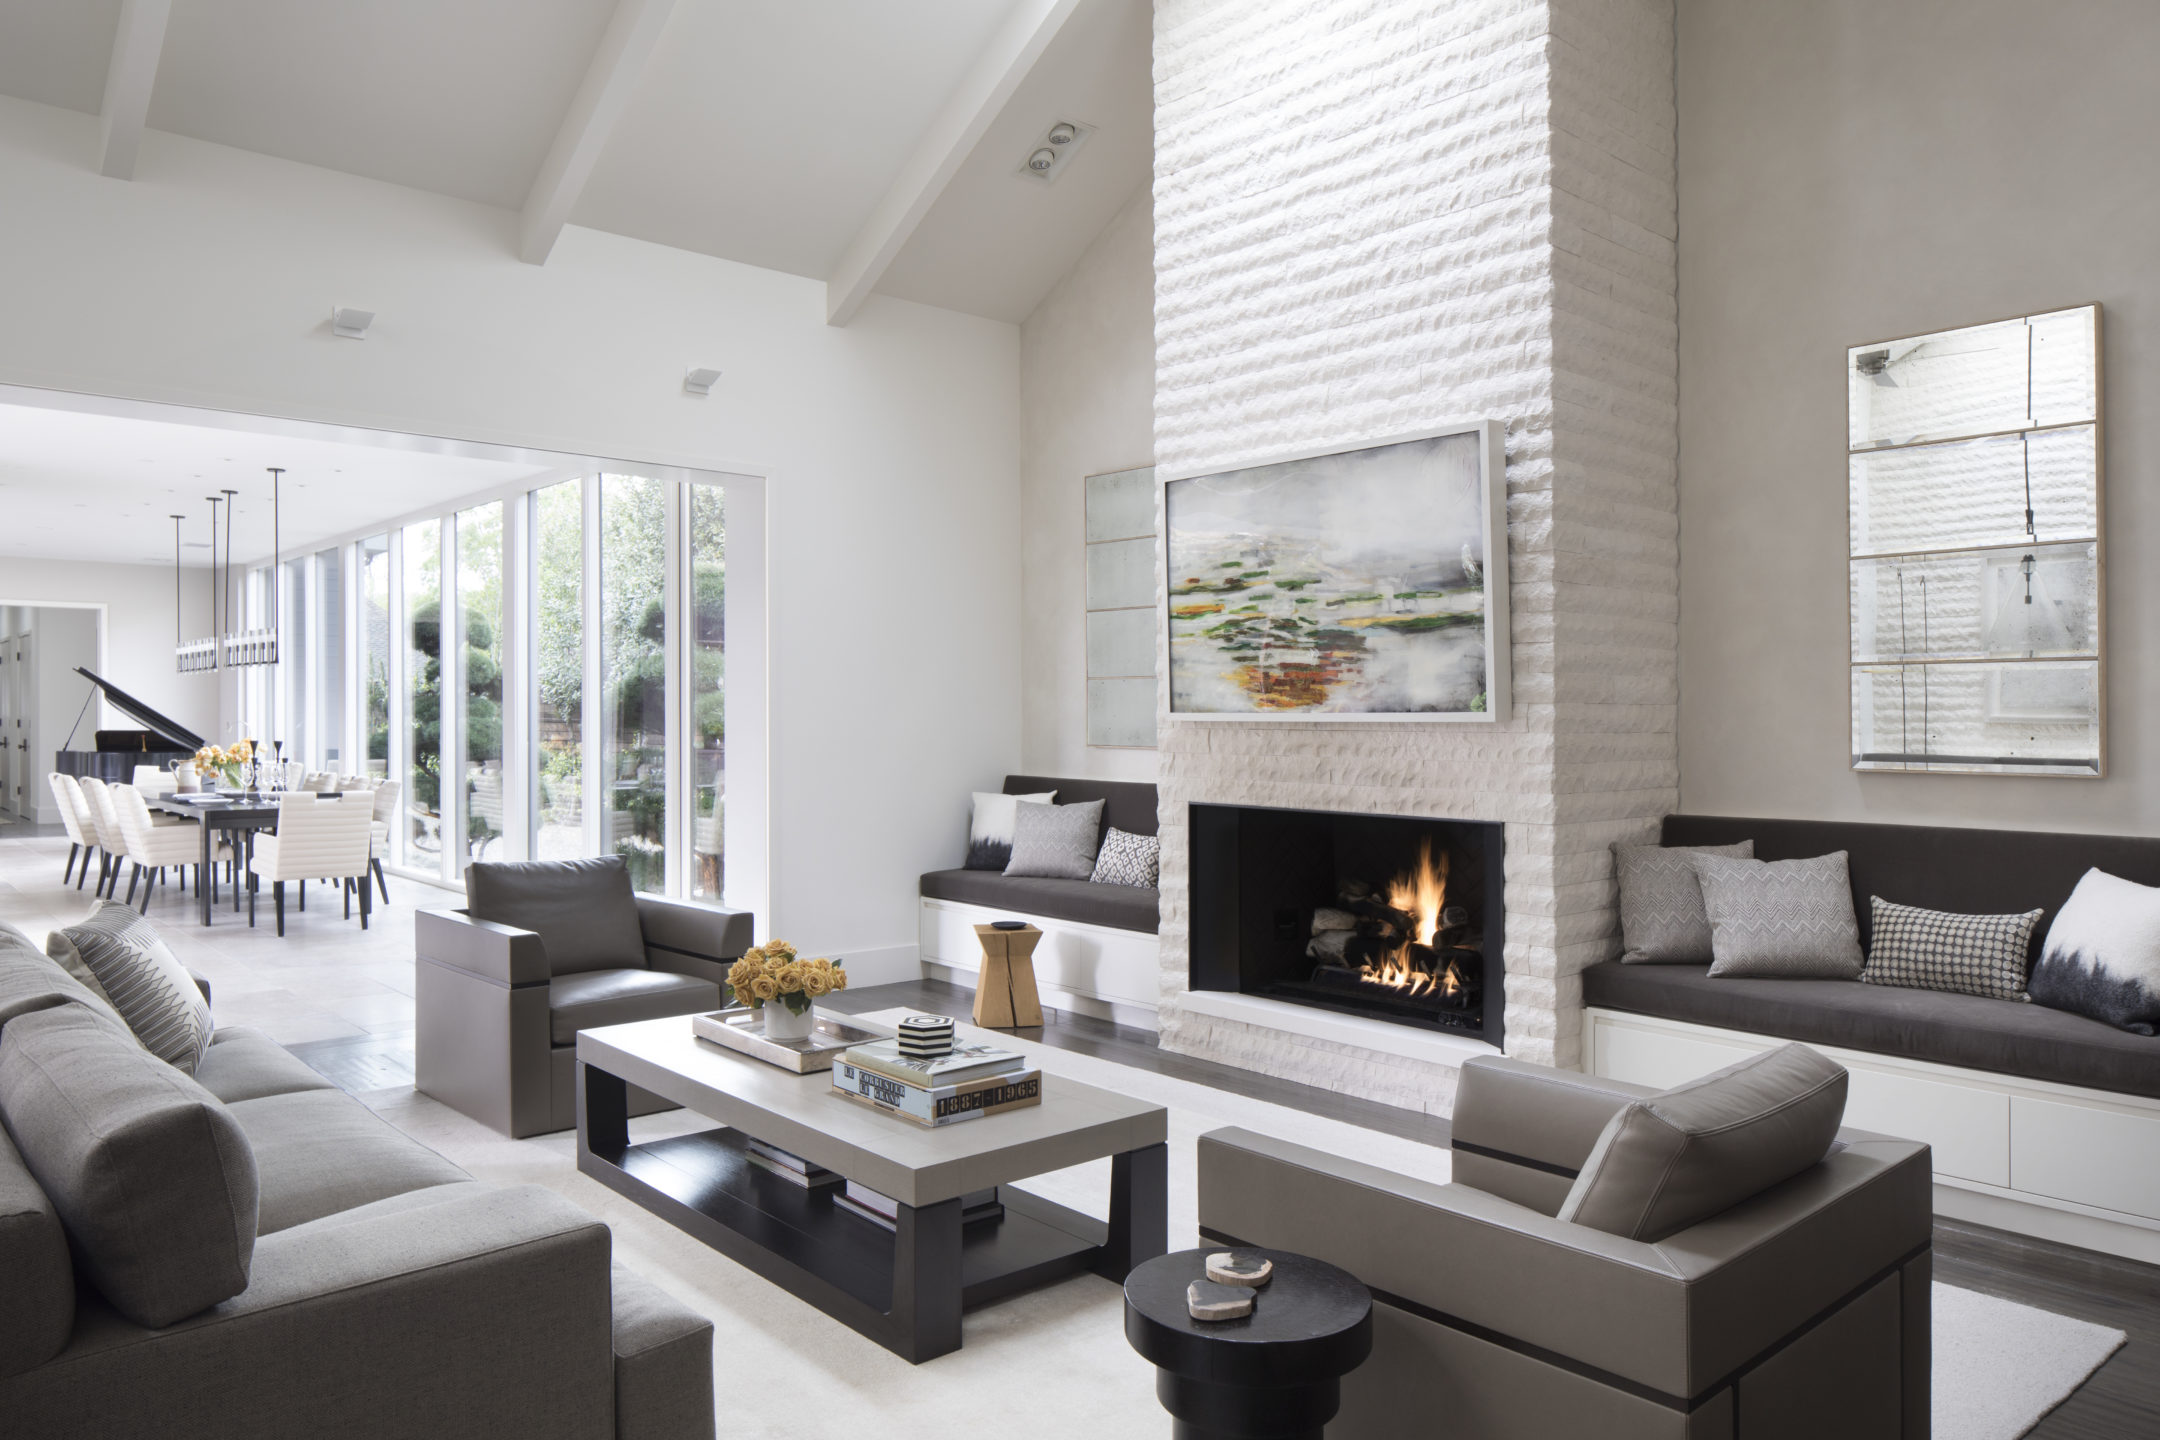 Jennifer_robins_interiors_projects_downtown_sonoma_3_living_room_LR_dining_room_DR